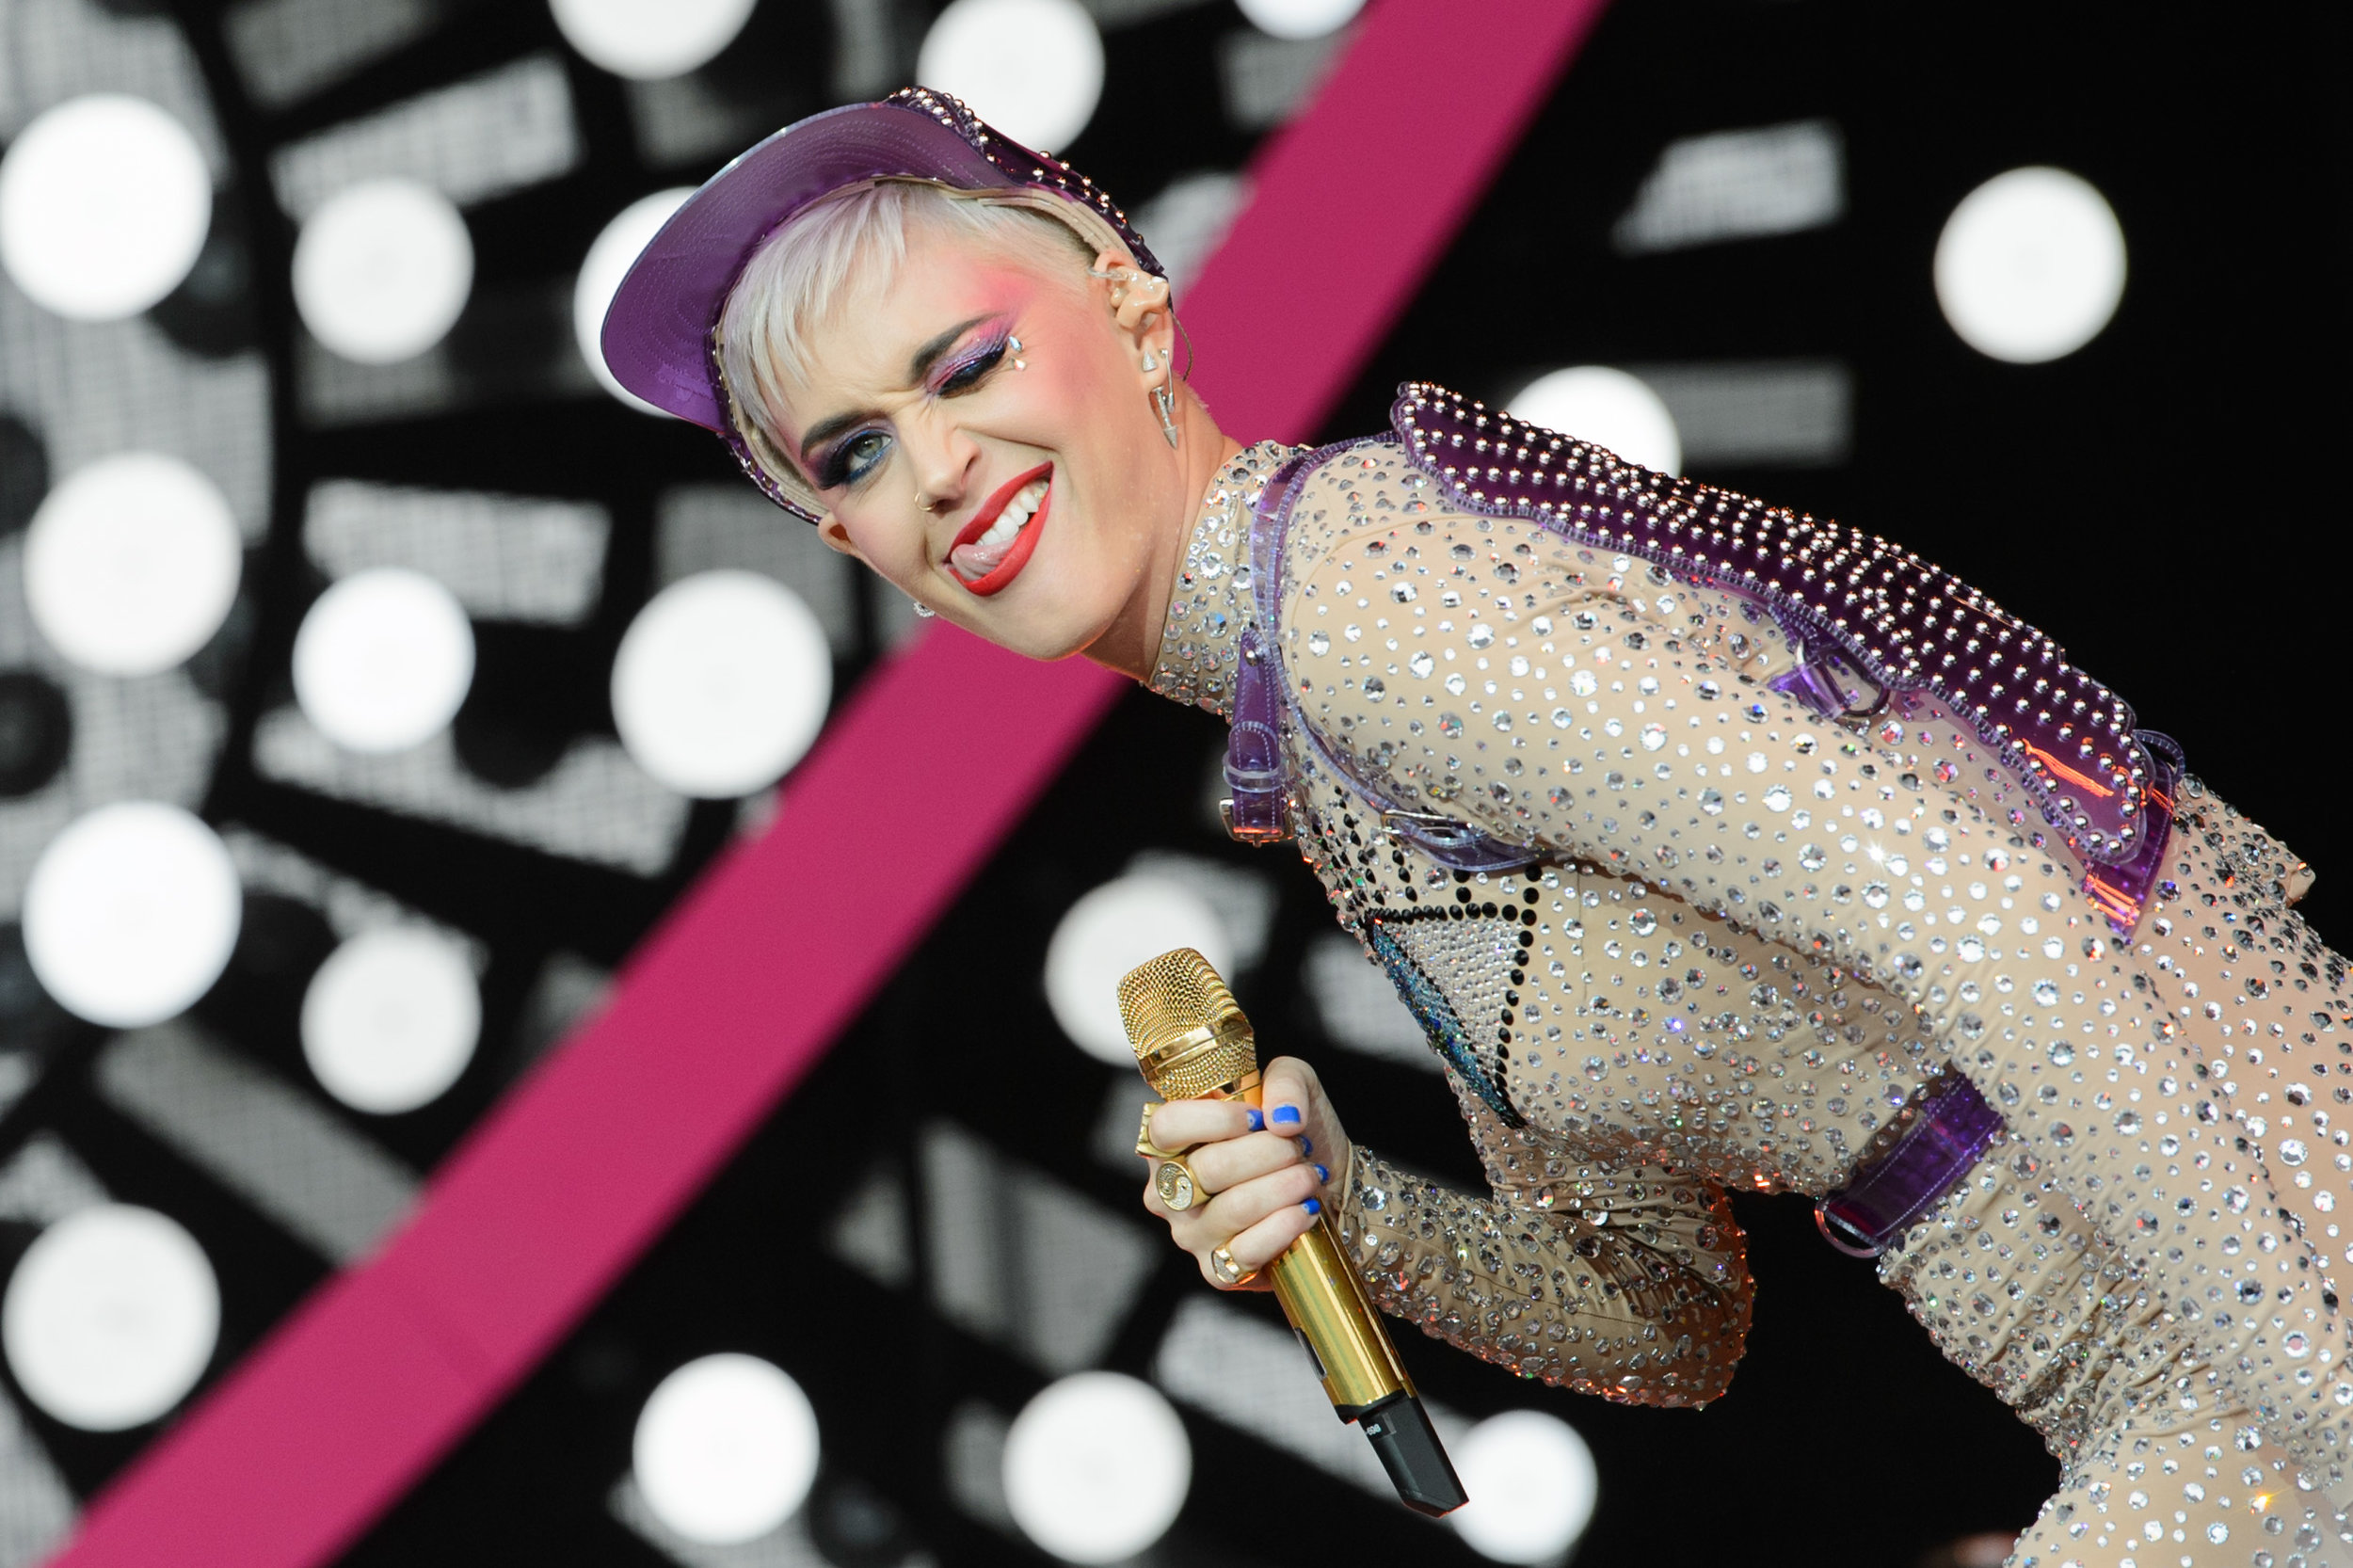 Katy Perry performs on the Pyramid Stage at the Glastonbury Festival.Photo by Joanne Davidson  24 June 2017